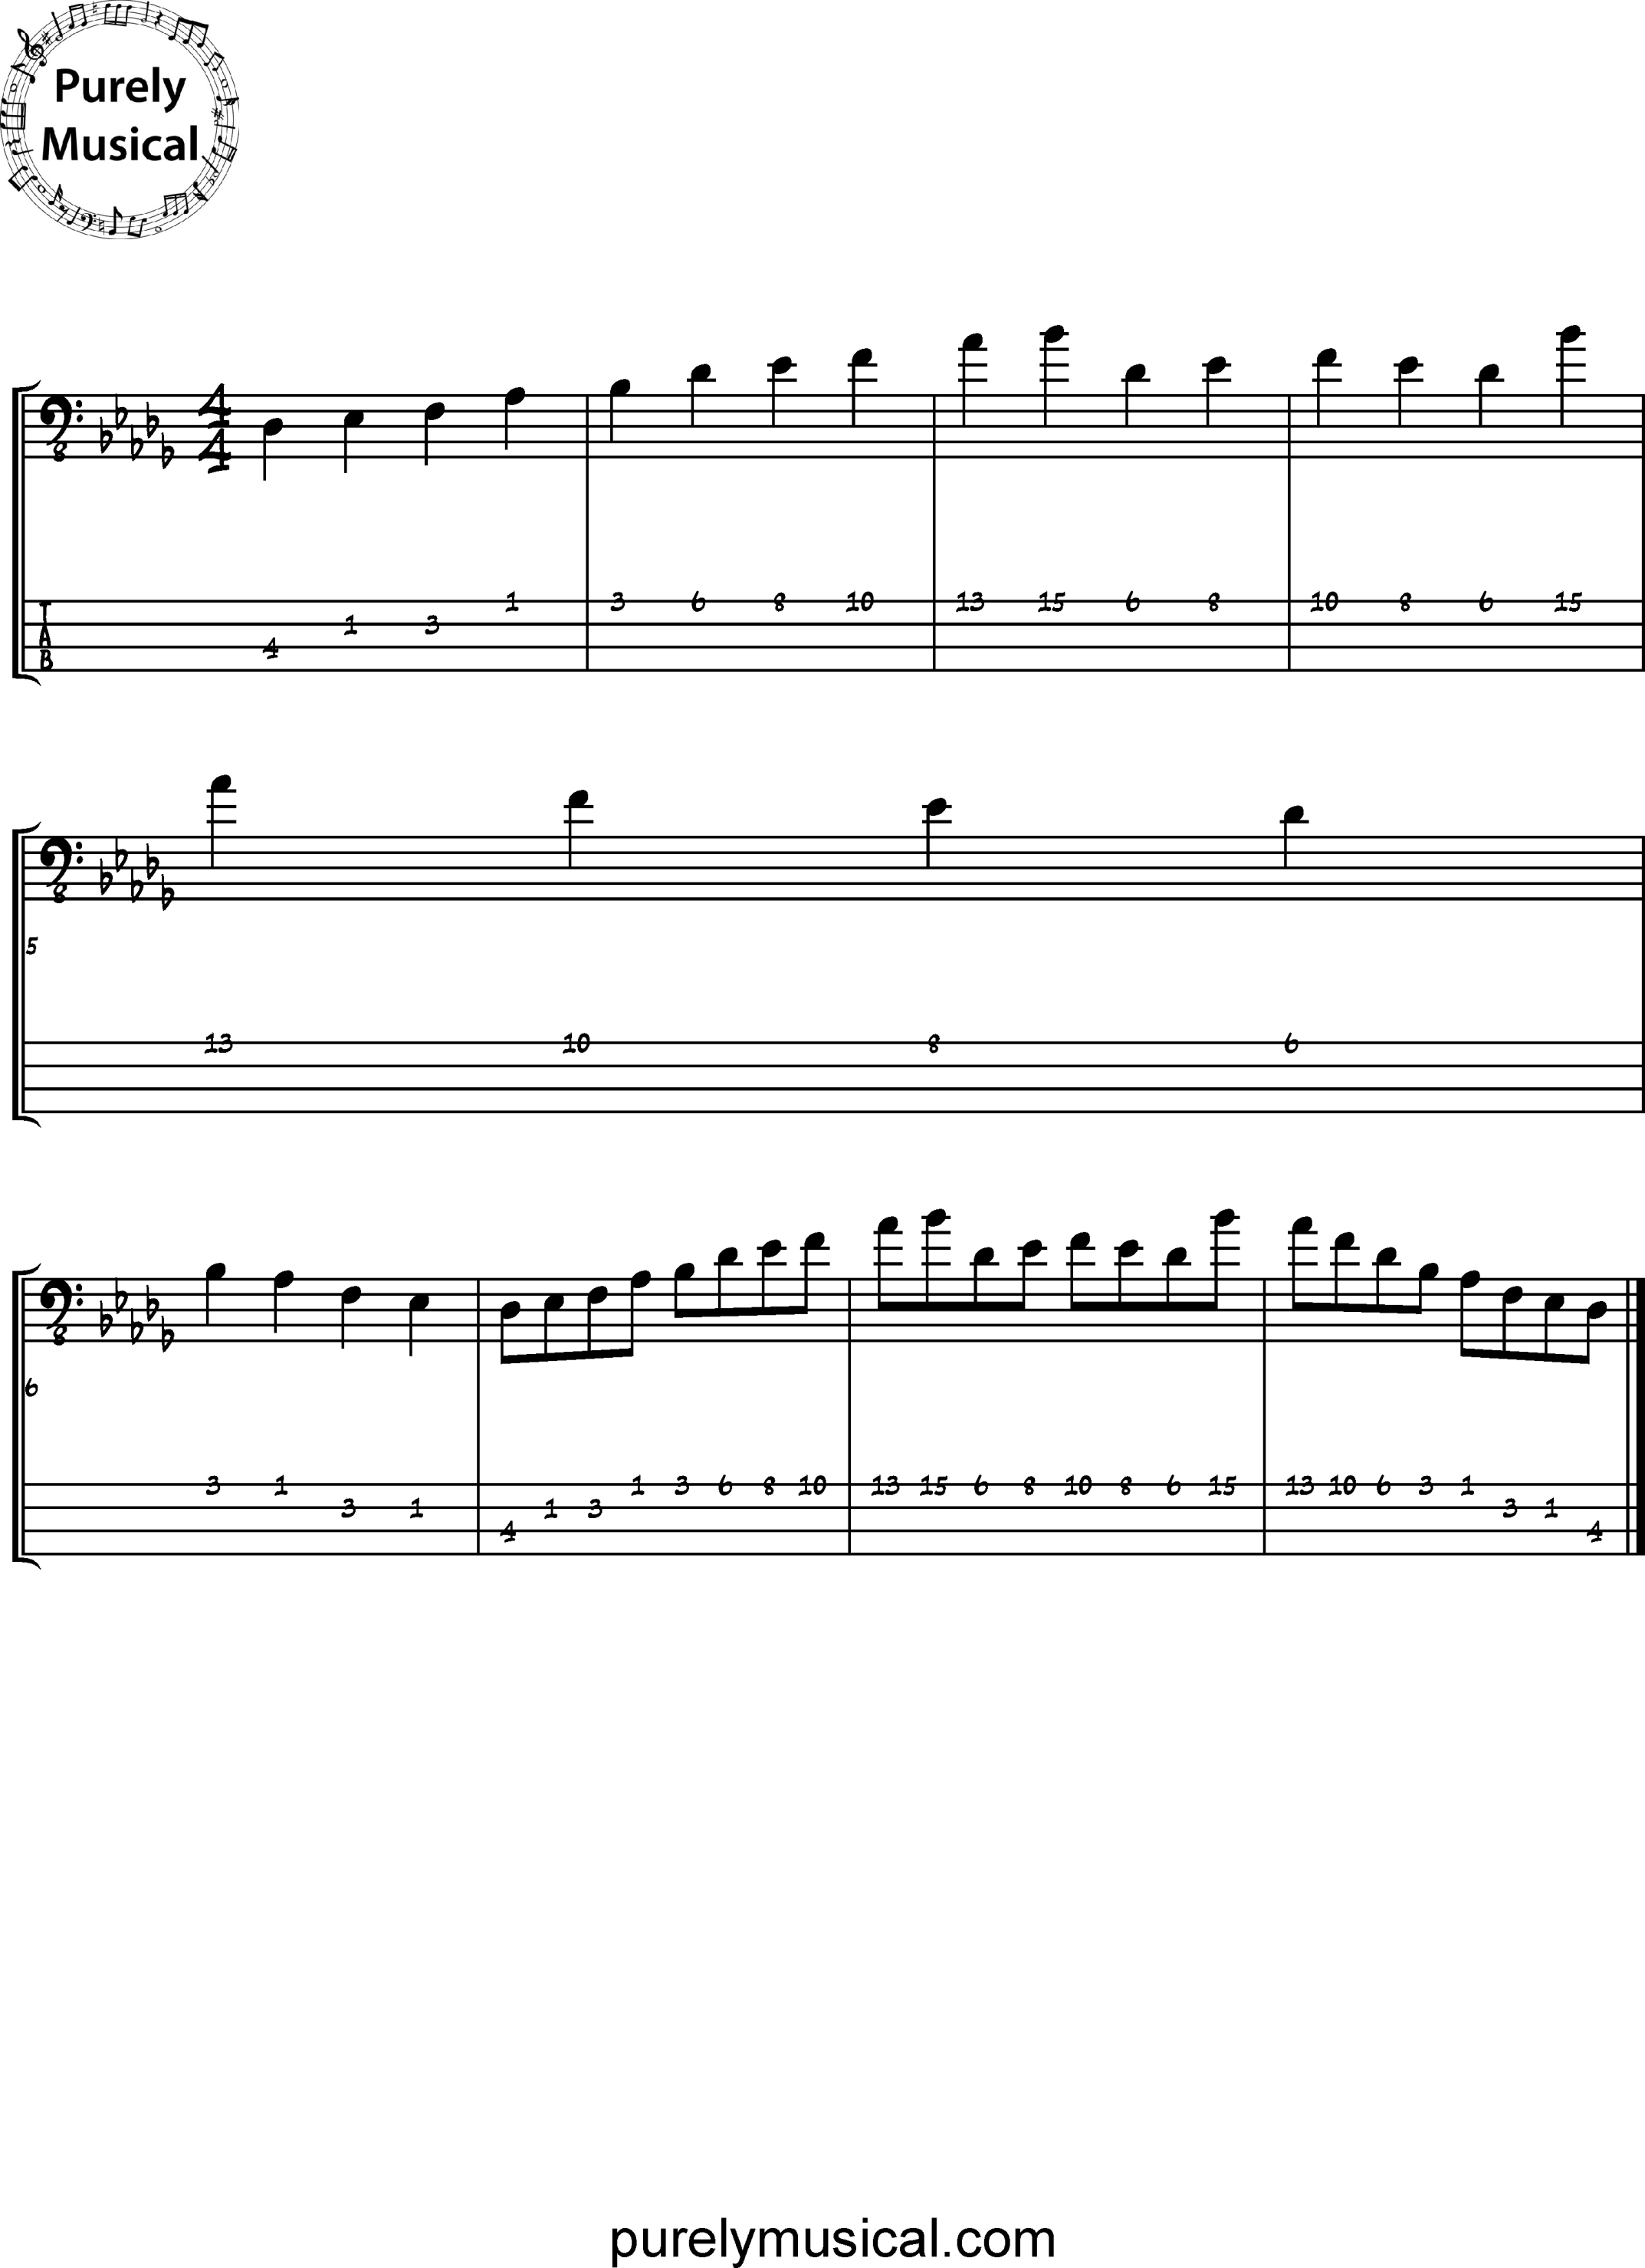 Beginner  Scale Db Major Pentatonic